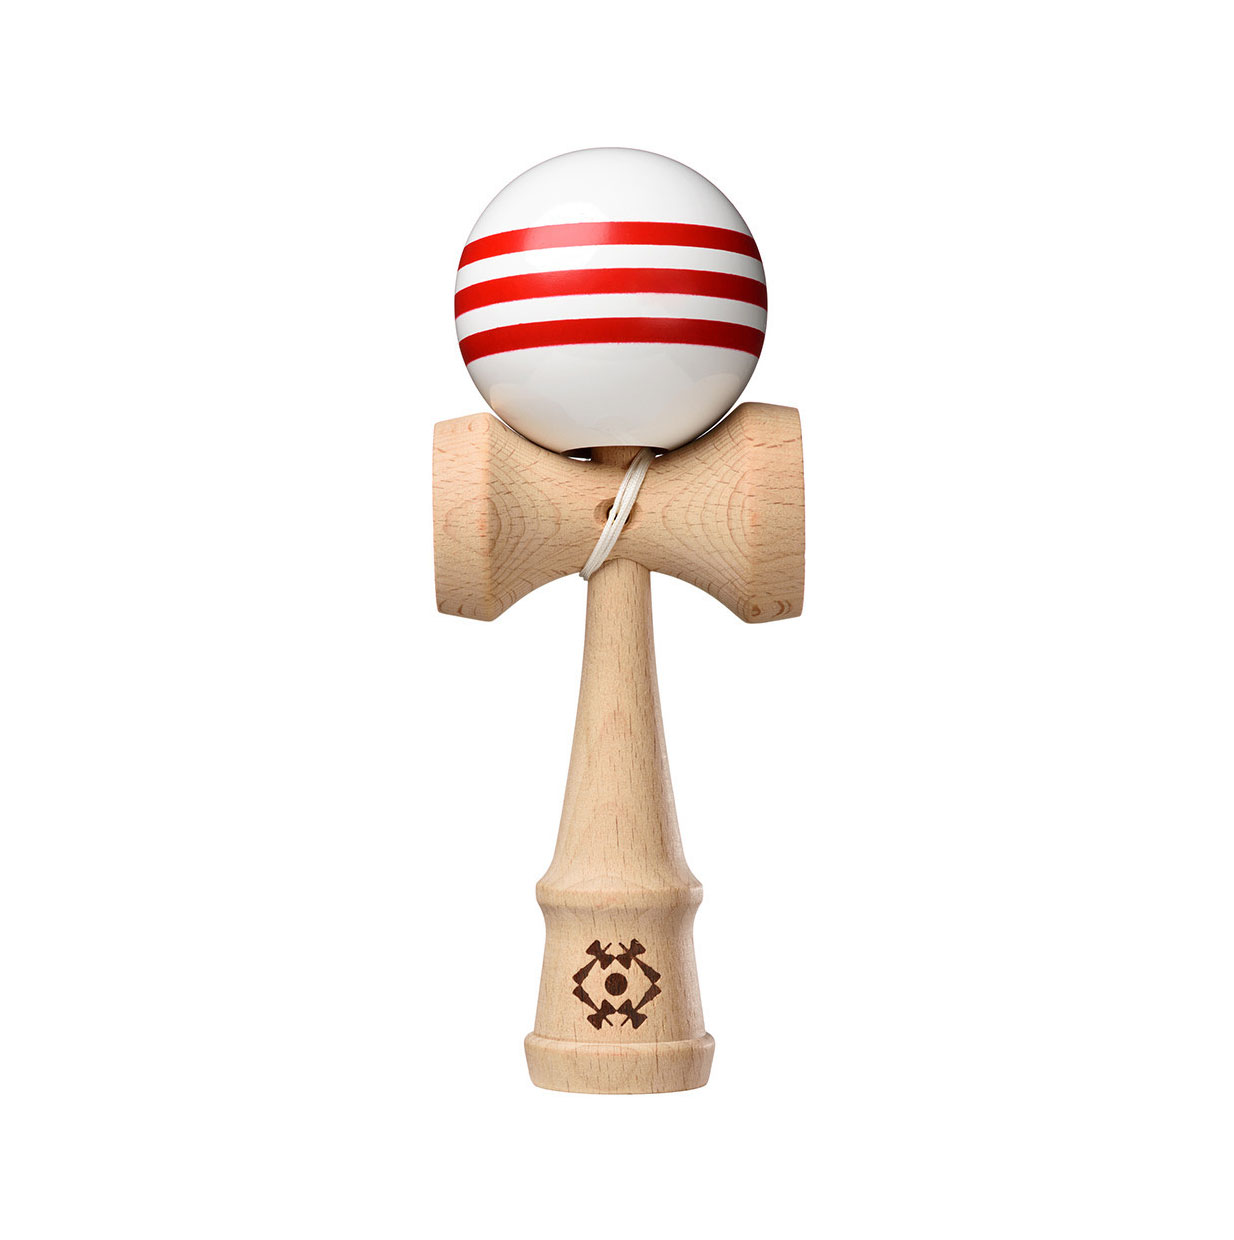 Tribute Kendama - White with 3 Red Stripes